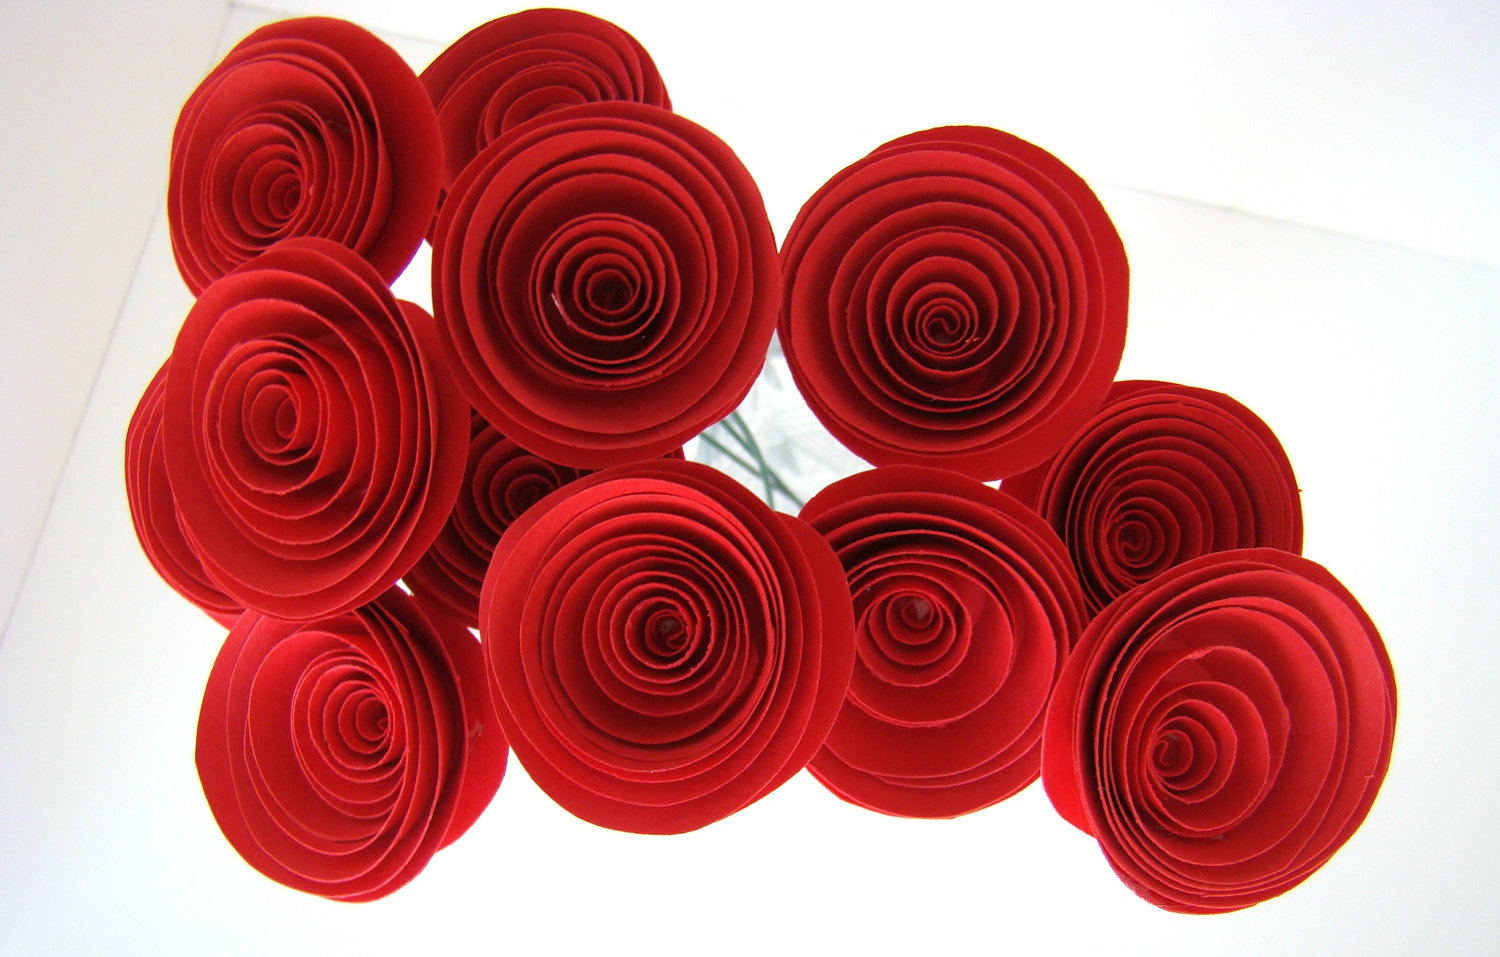 Large Red Roses One Dozen Spiral Paper Roses With Stems Origami